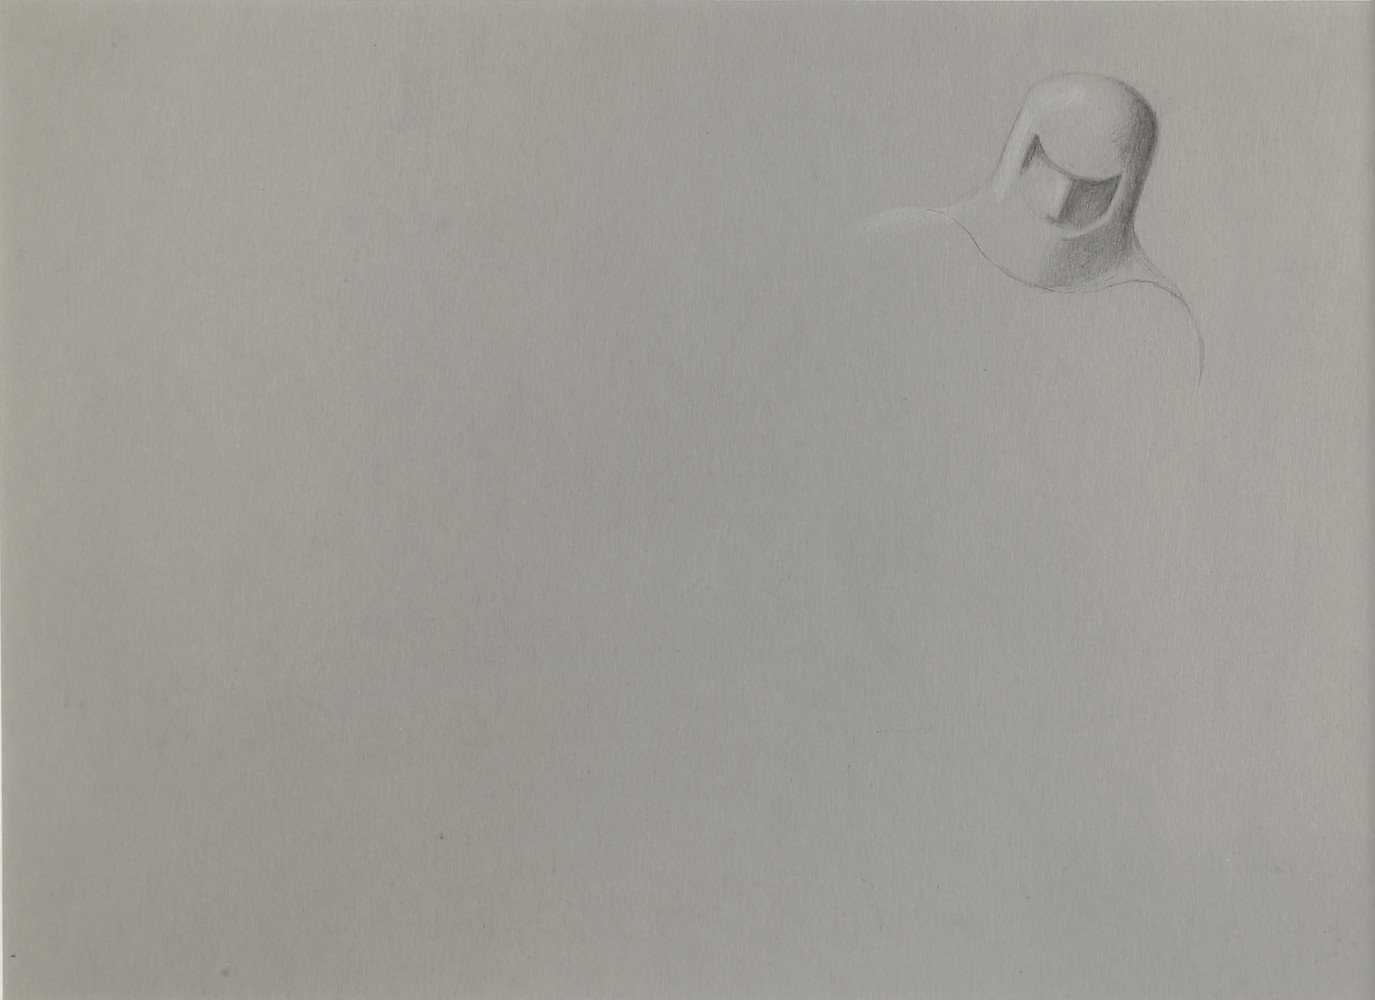 Abstract Figurative Graphite and White Heightening on Paper Drawing: